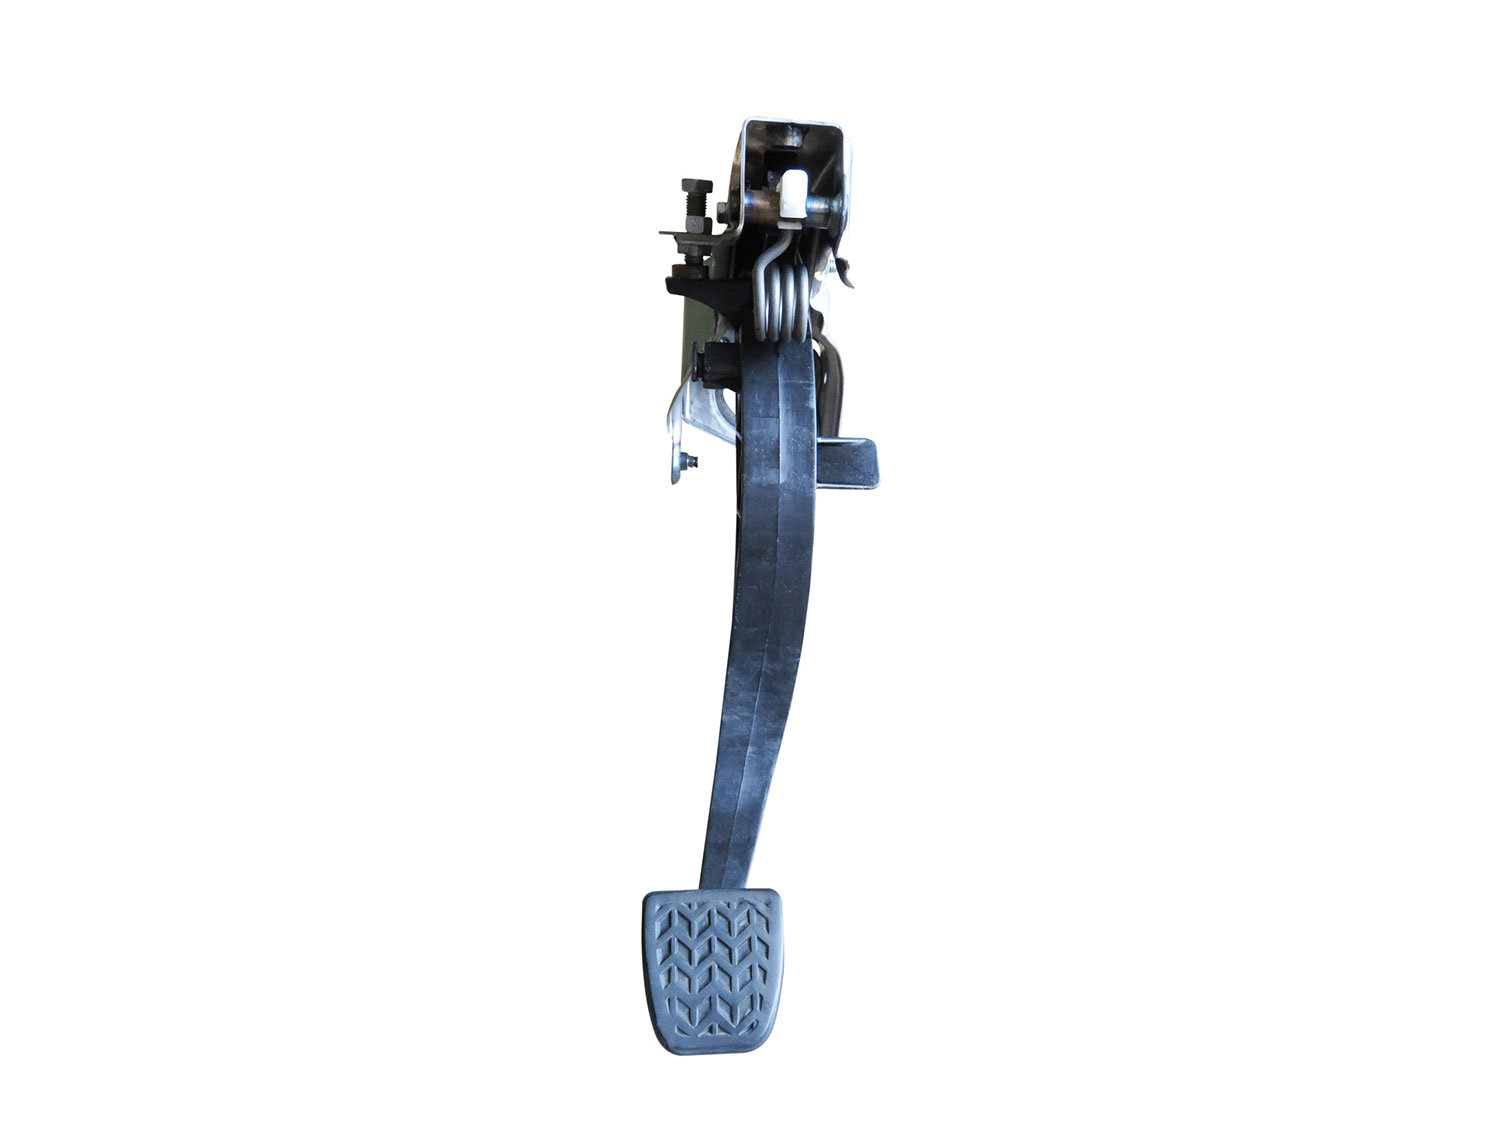 Suppliers Of Quality Used Toyota Quantum Clutch Pedals | Taxi Auto Parts